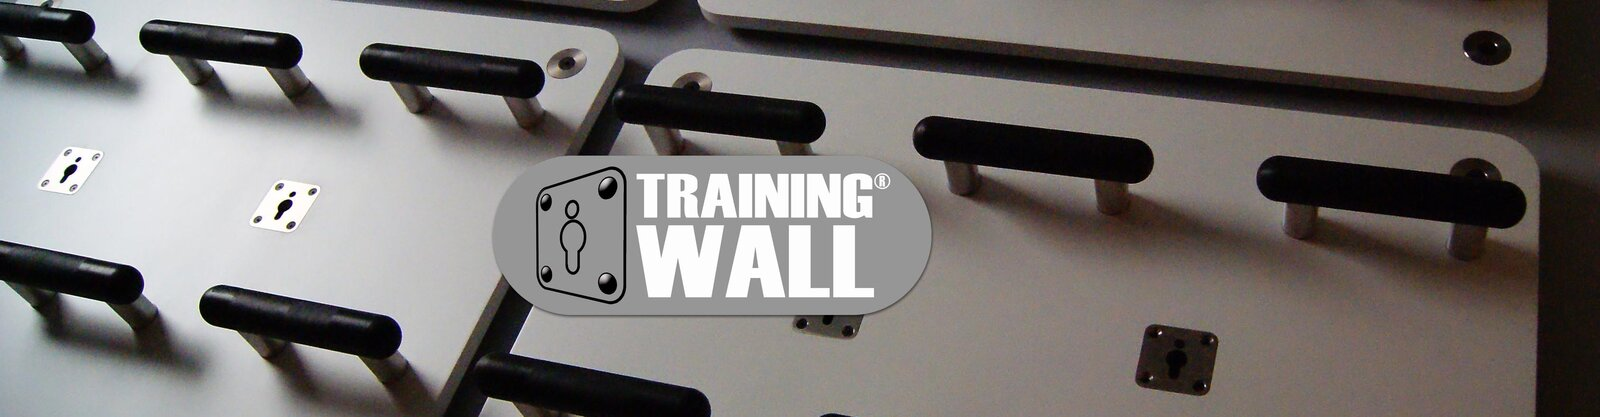 trainingwallslider